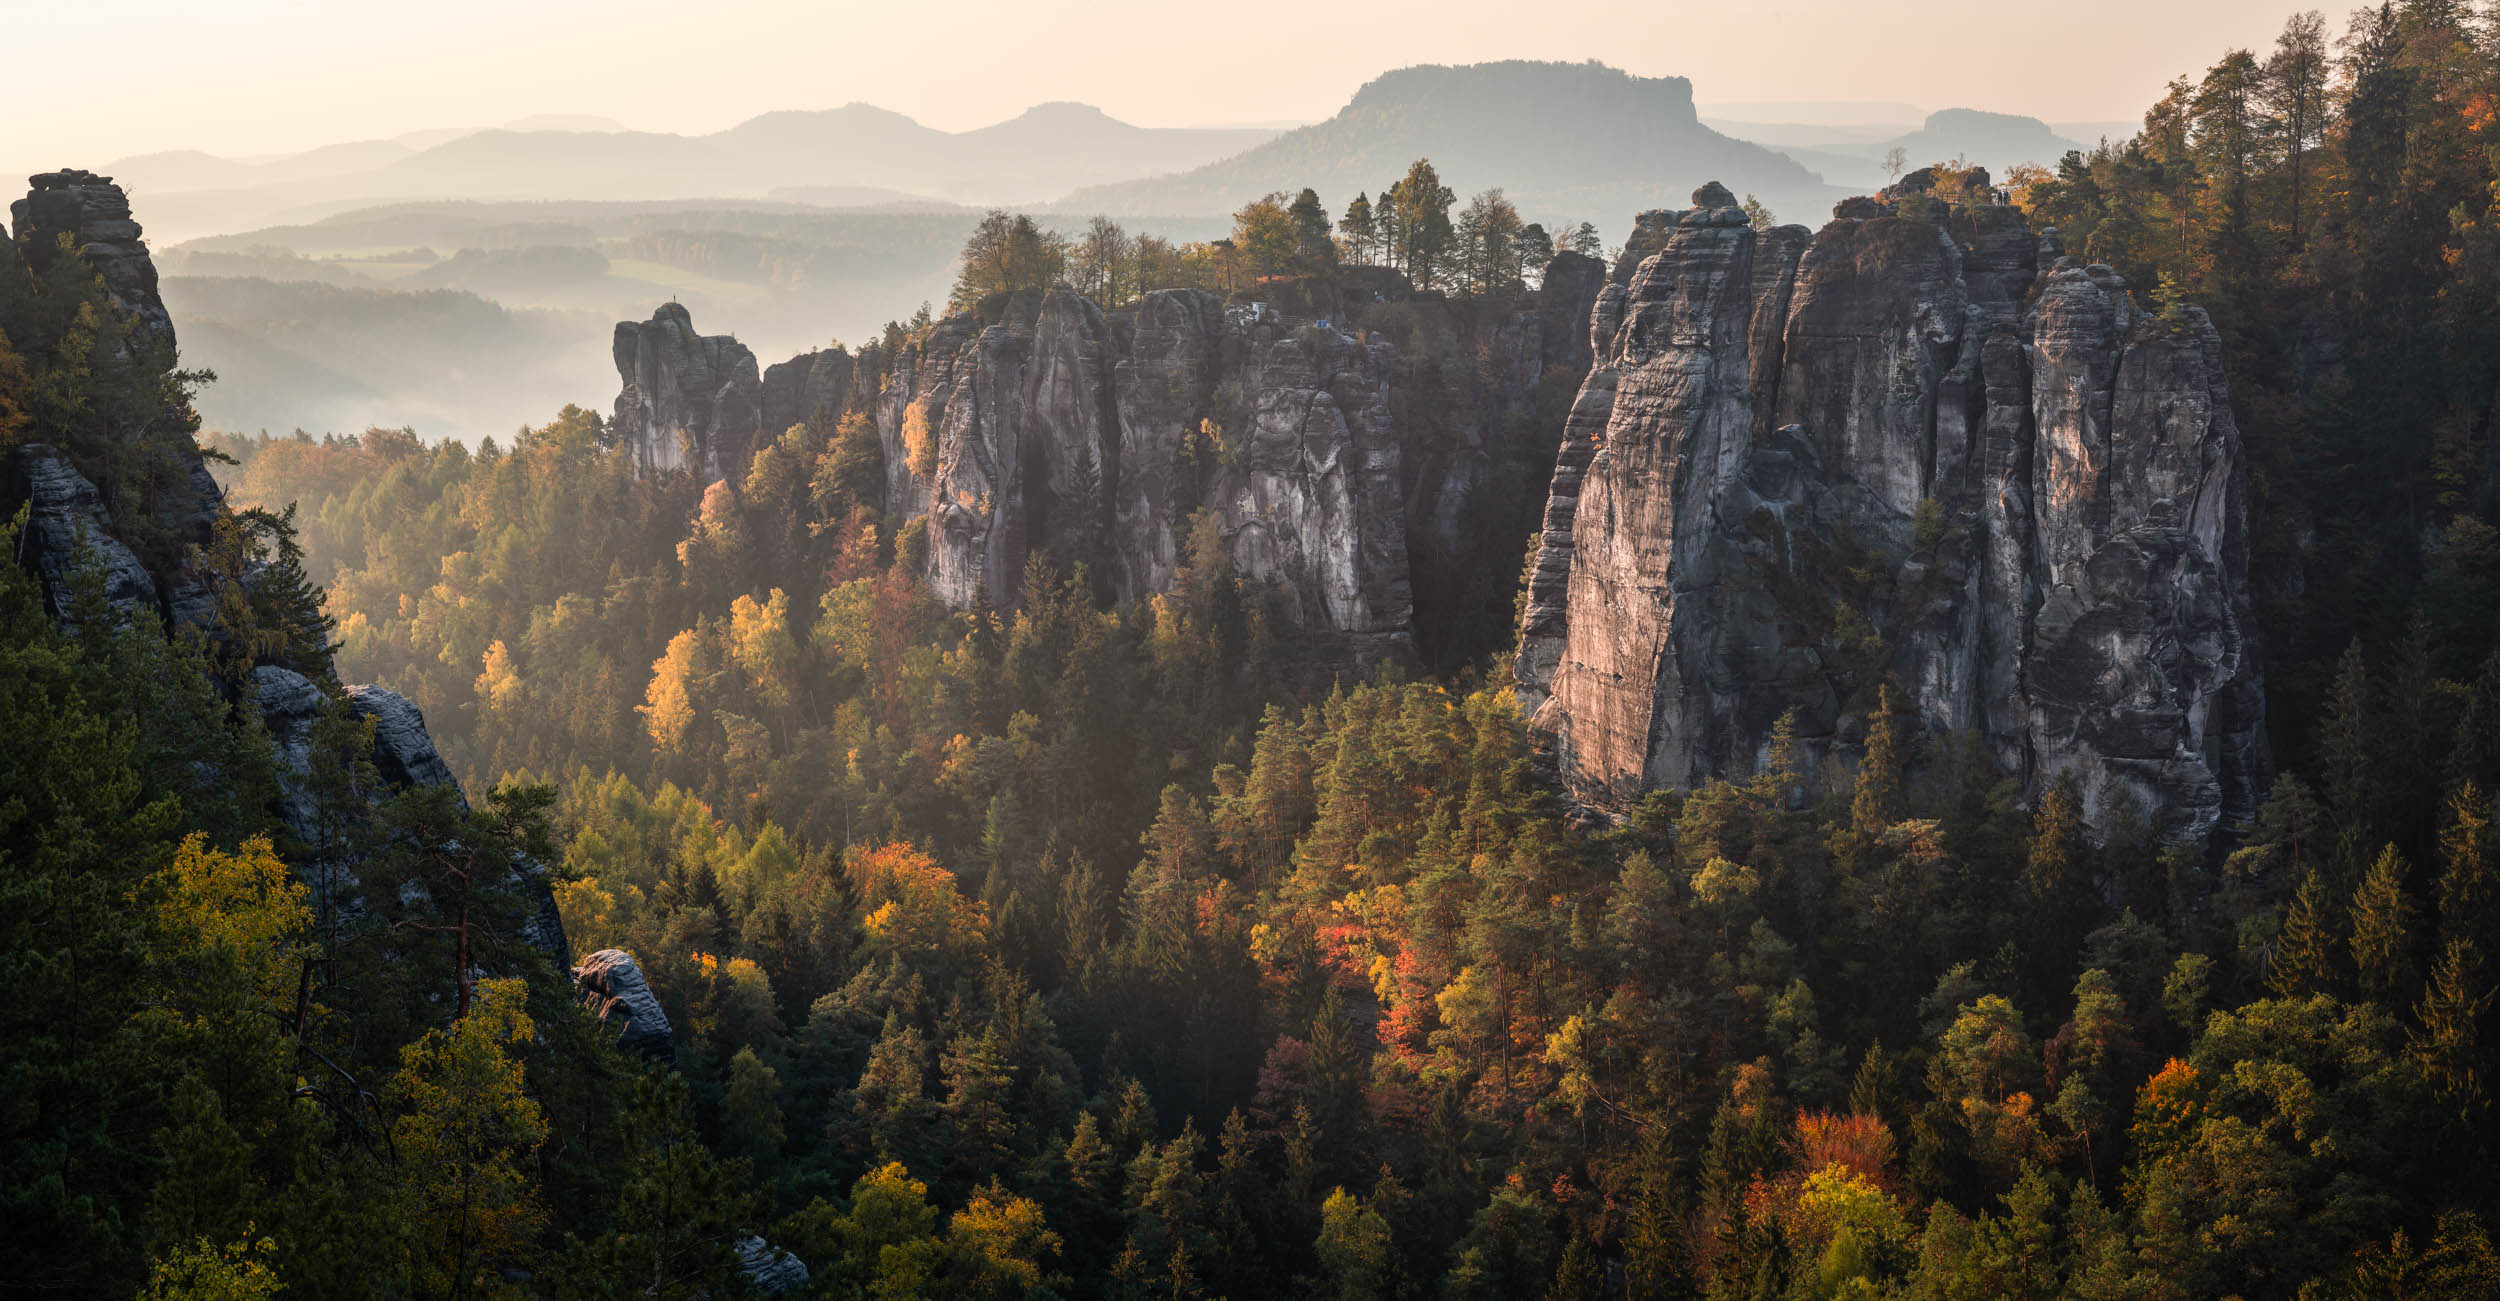 Panorama Bastei - Landscape Photography in Autumn